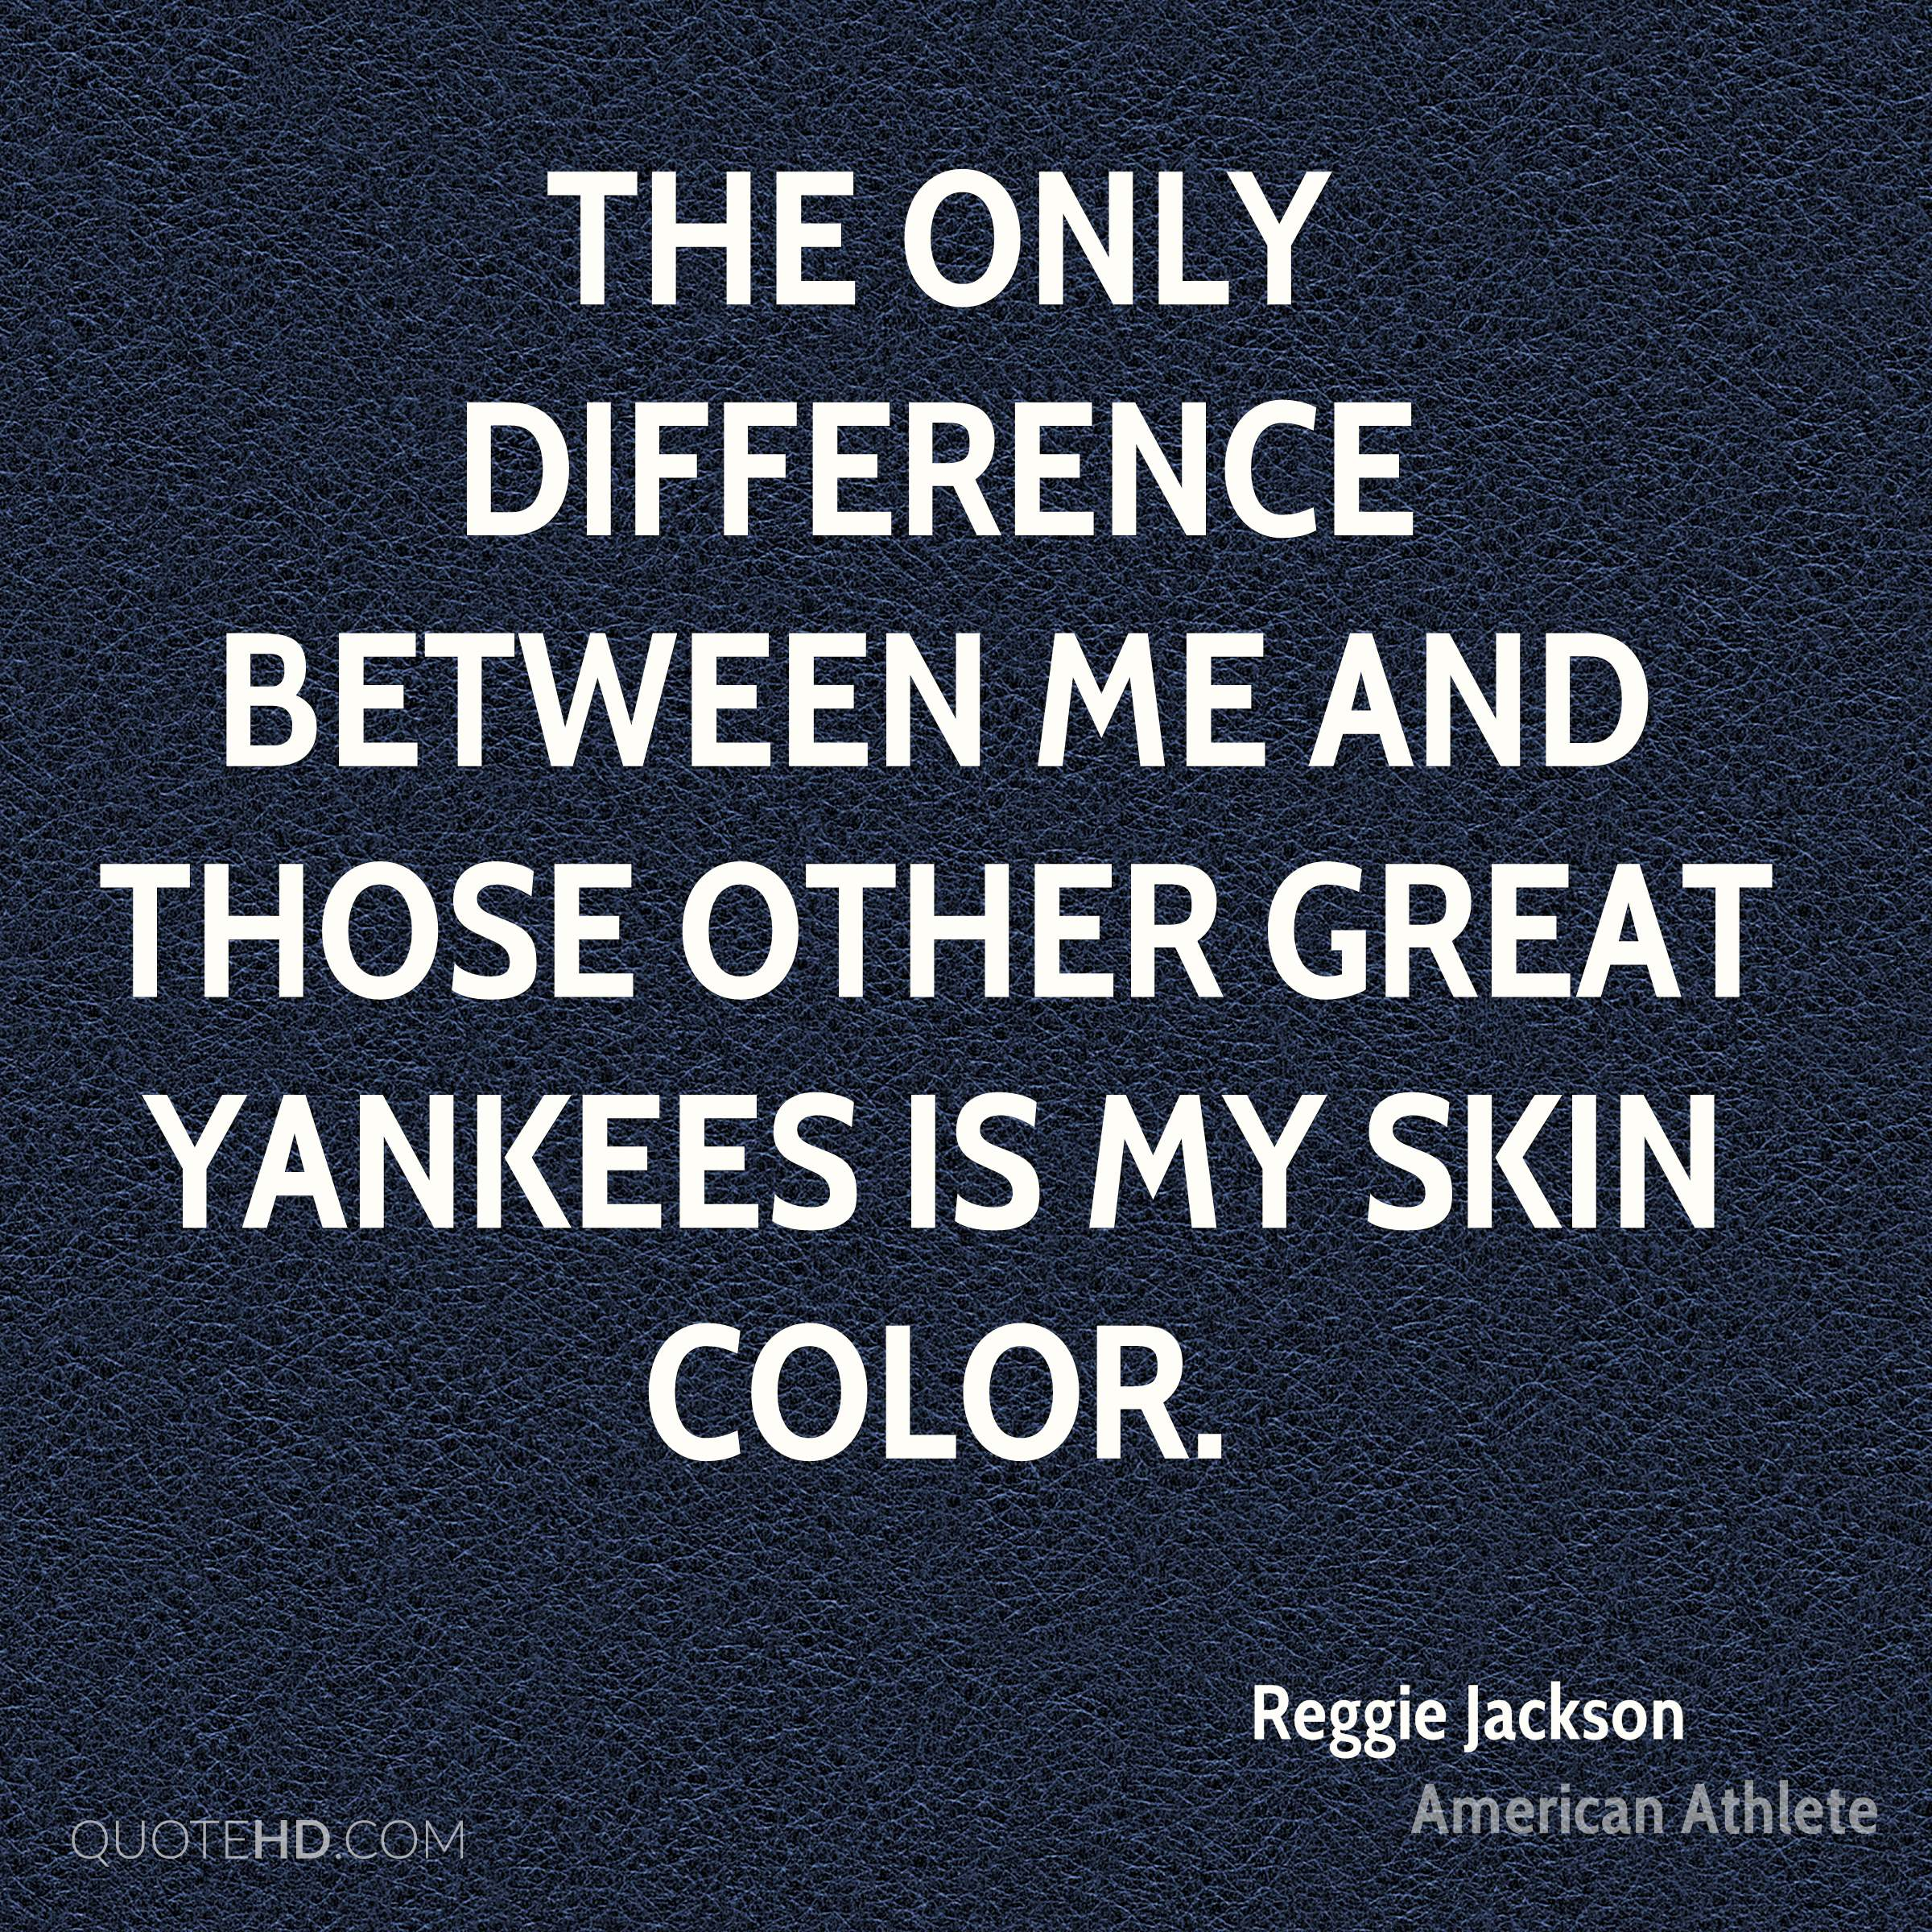 The only difference between me and those other great Yankees is my skin color.